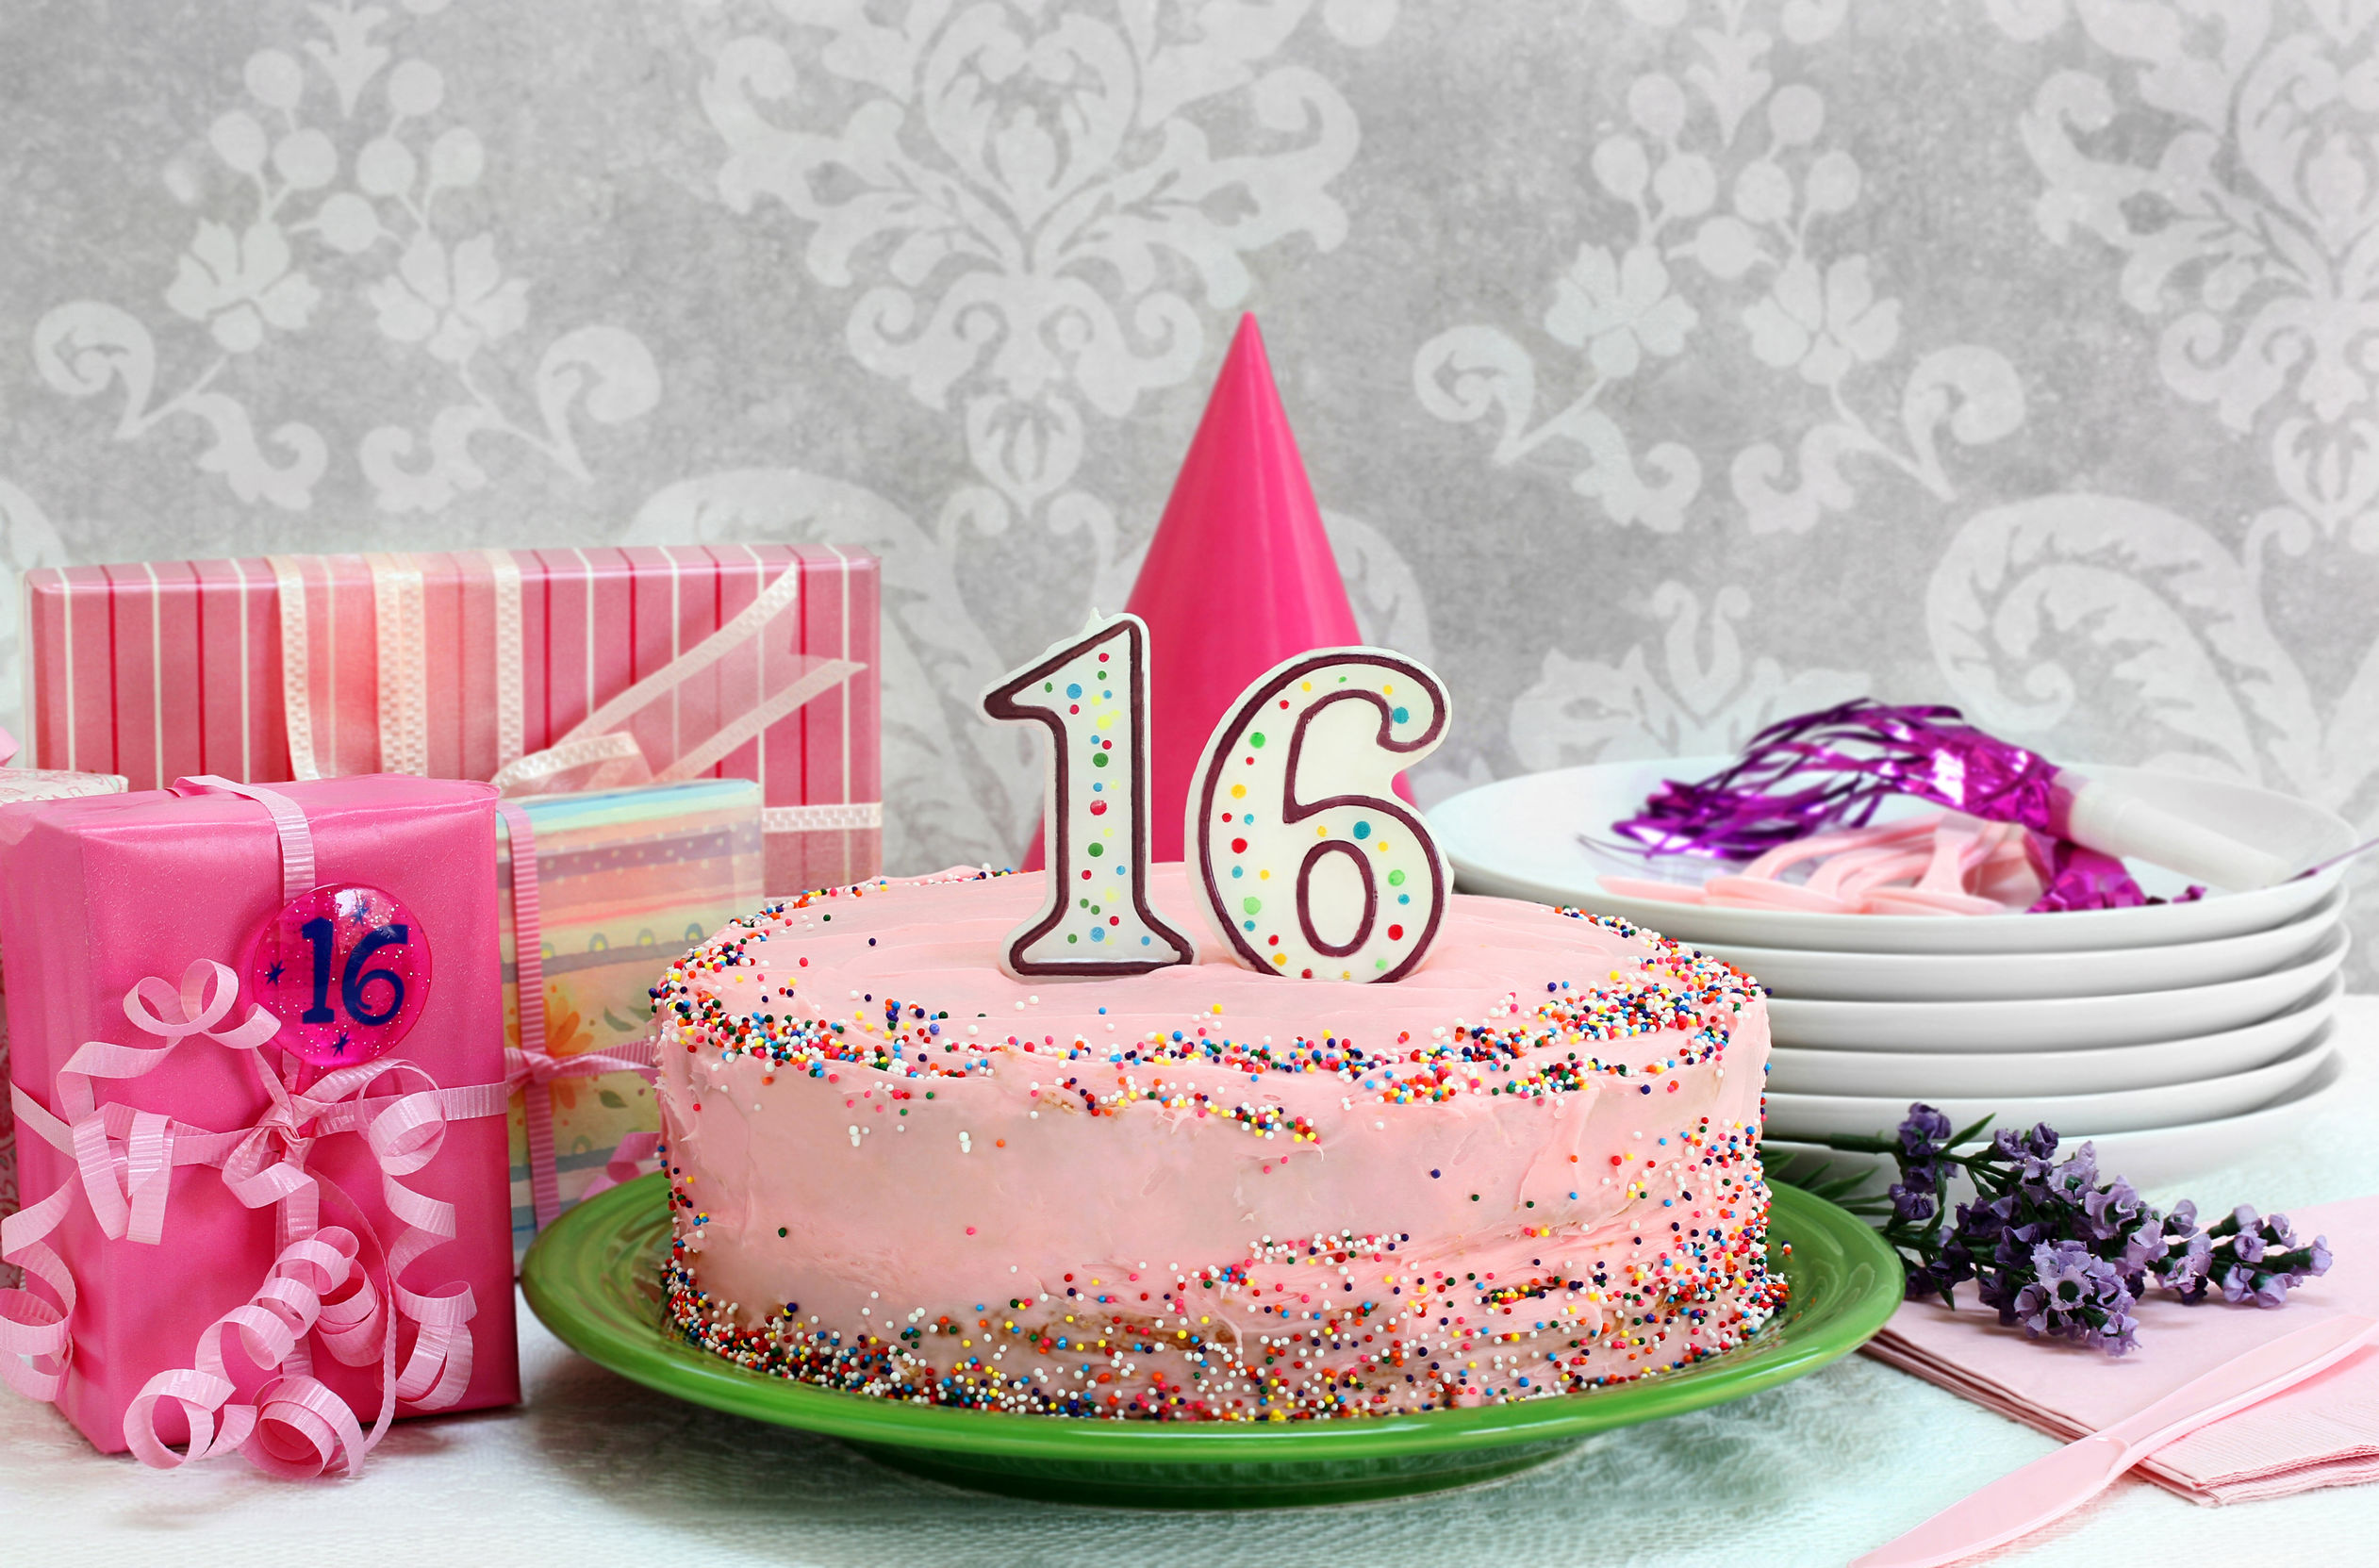 4 Tips for Planning the Perfect Little Girl's Spa Birthday Party